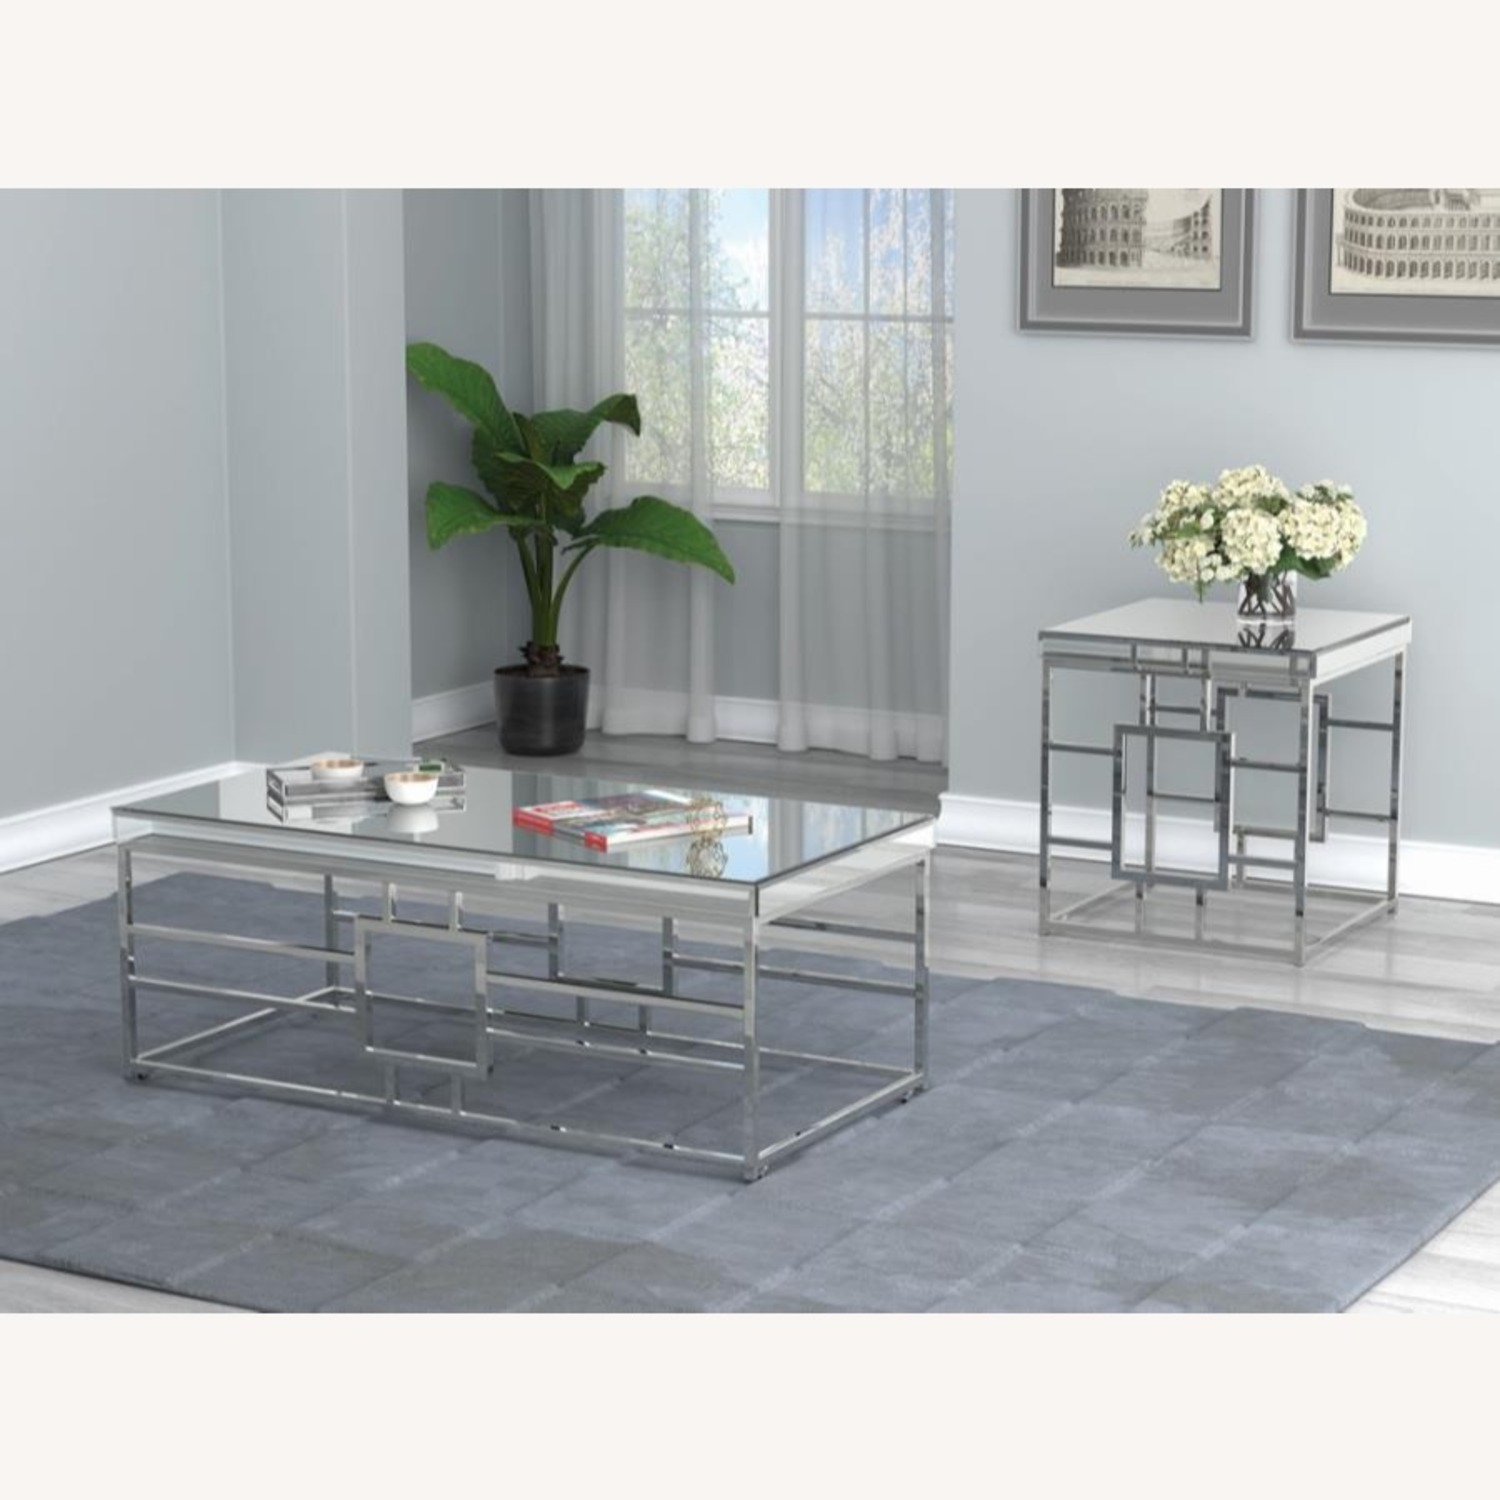 Modern Coffee Table In Chrome Finish Frame - image-4